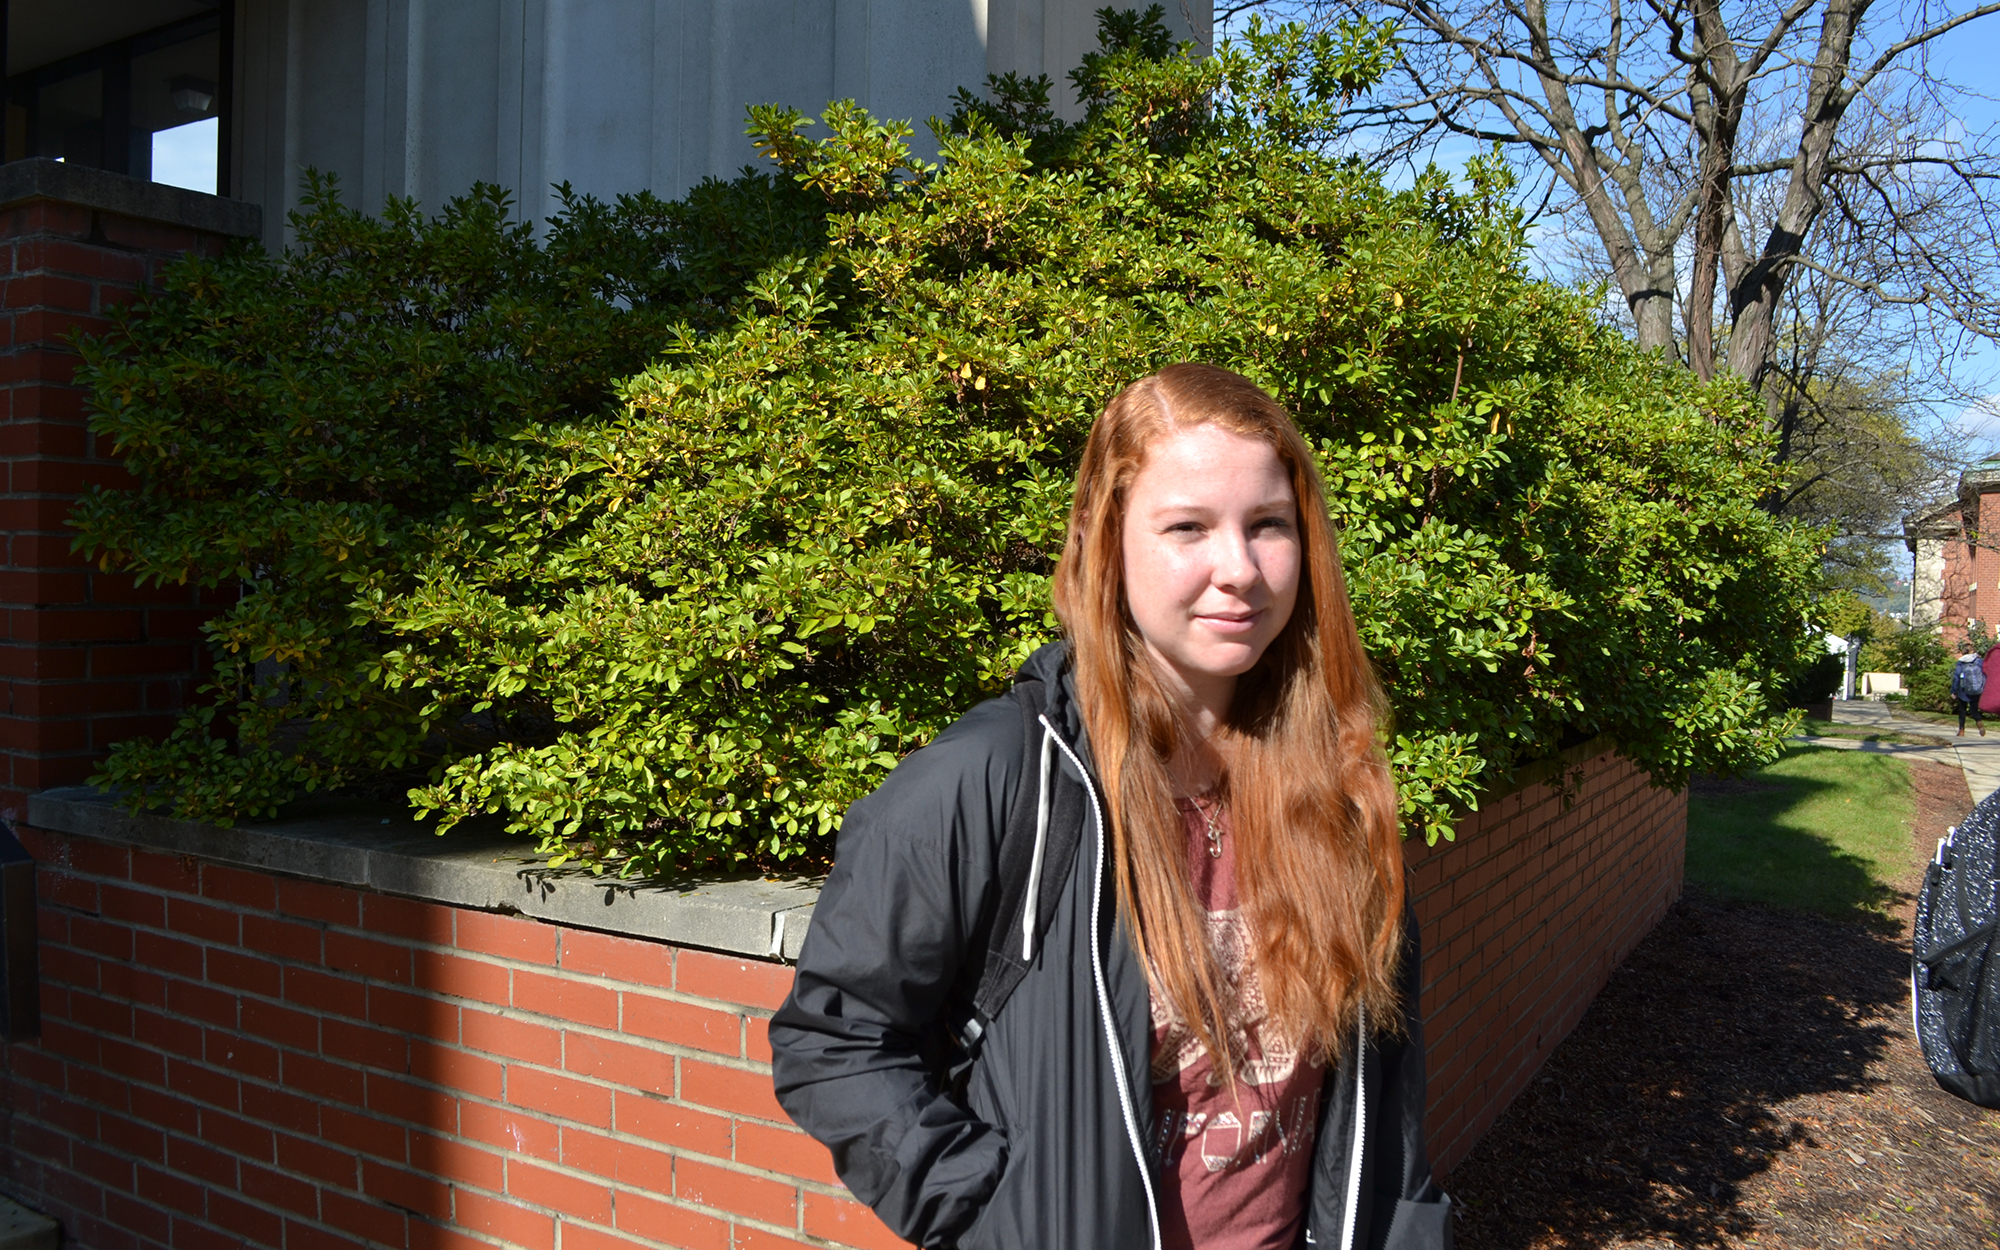 Julie Swedberg is a student at Chatham University. (Photo by Kinsley Stocum/PublicSource)